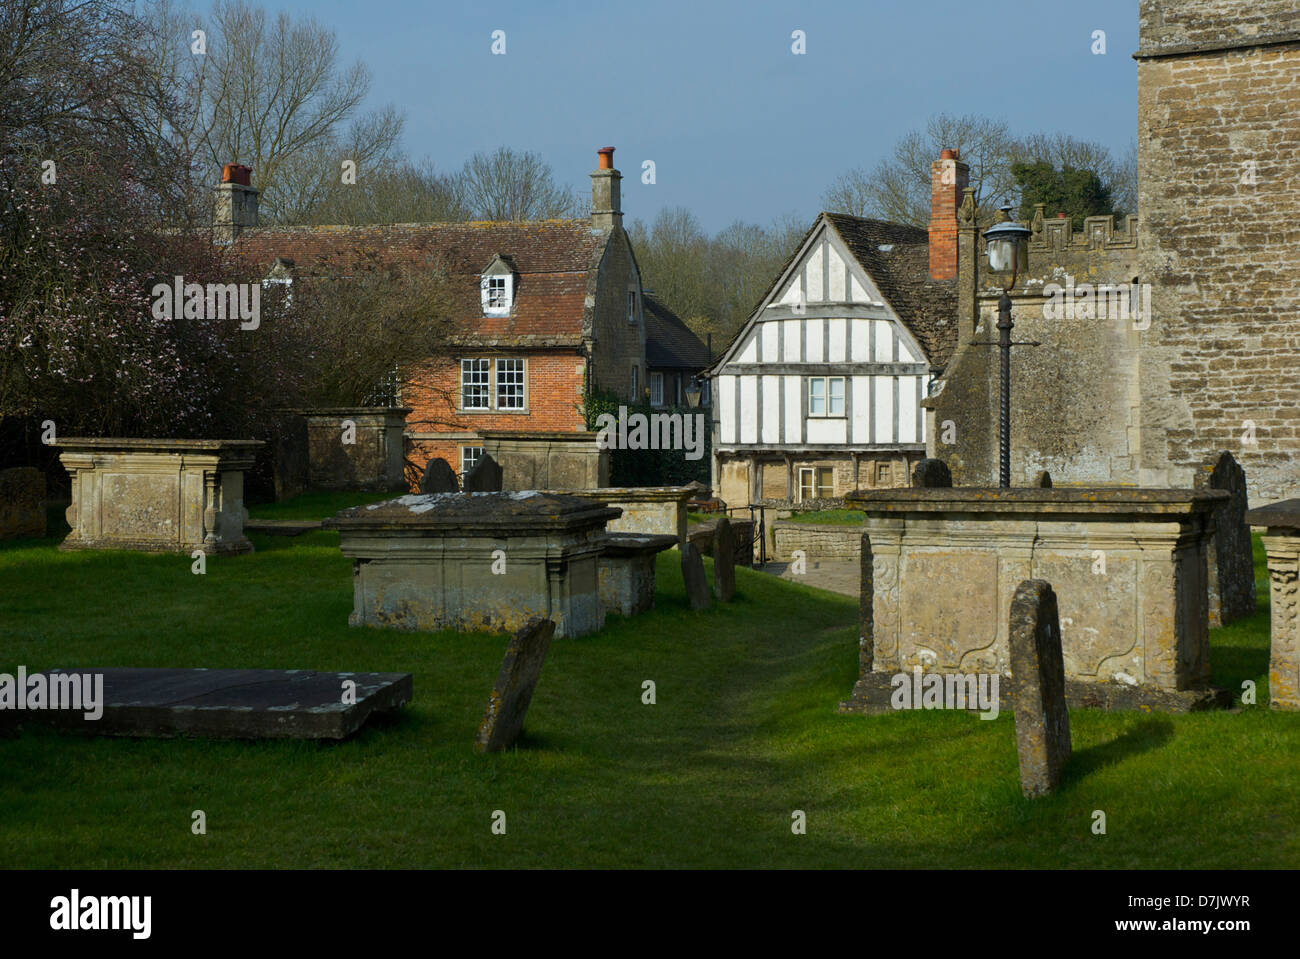 The churchyard in the village of Lackock, Wiltshire, England UK - Stock Image